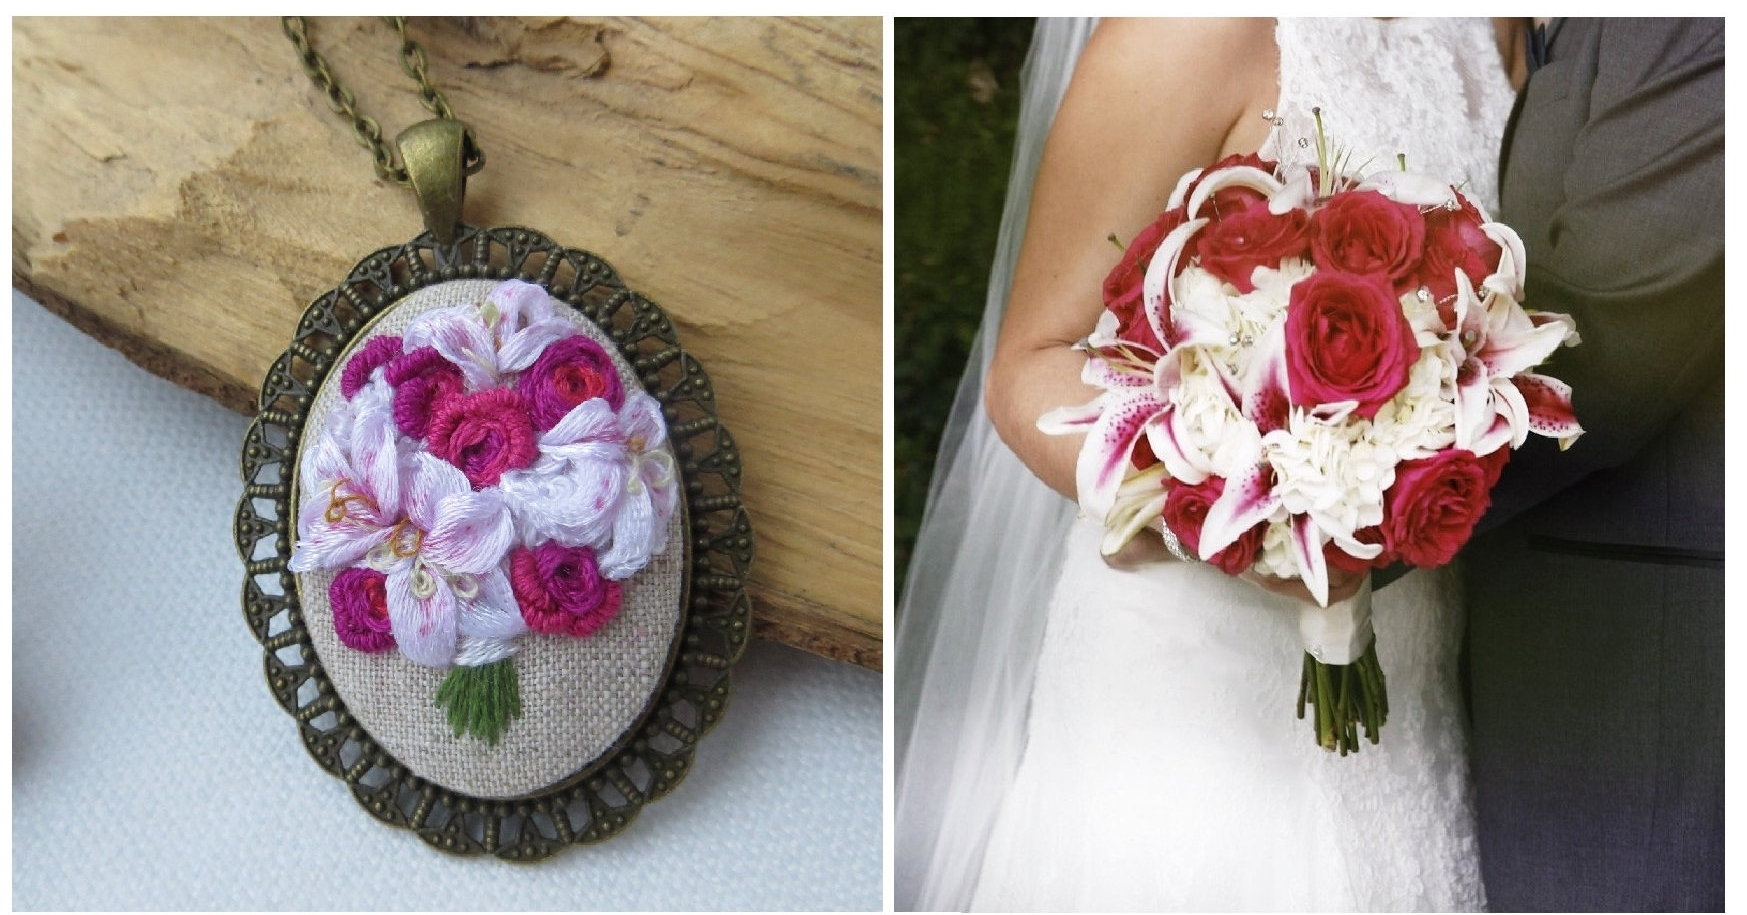 Bridal Bouquet Embroidery - There is some debate on whether the 4th anniversary gift is supposed to be flowers or linen. So why not get a gift that covers both?! Just send a picture of the bridal bouquet from your big day and Miss Konvalia will hand embroider a replica that makes the most sentimental keepsake ever!